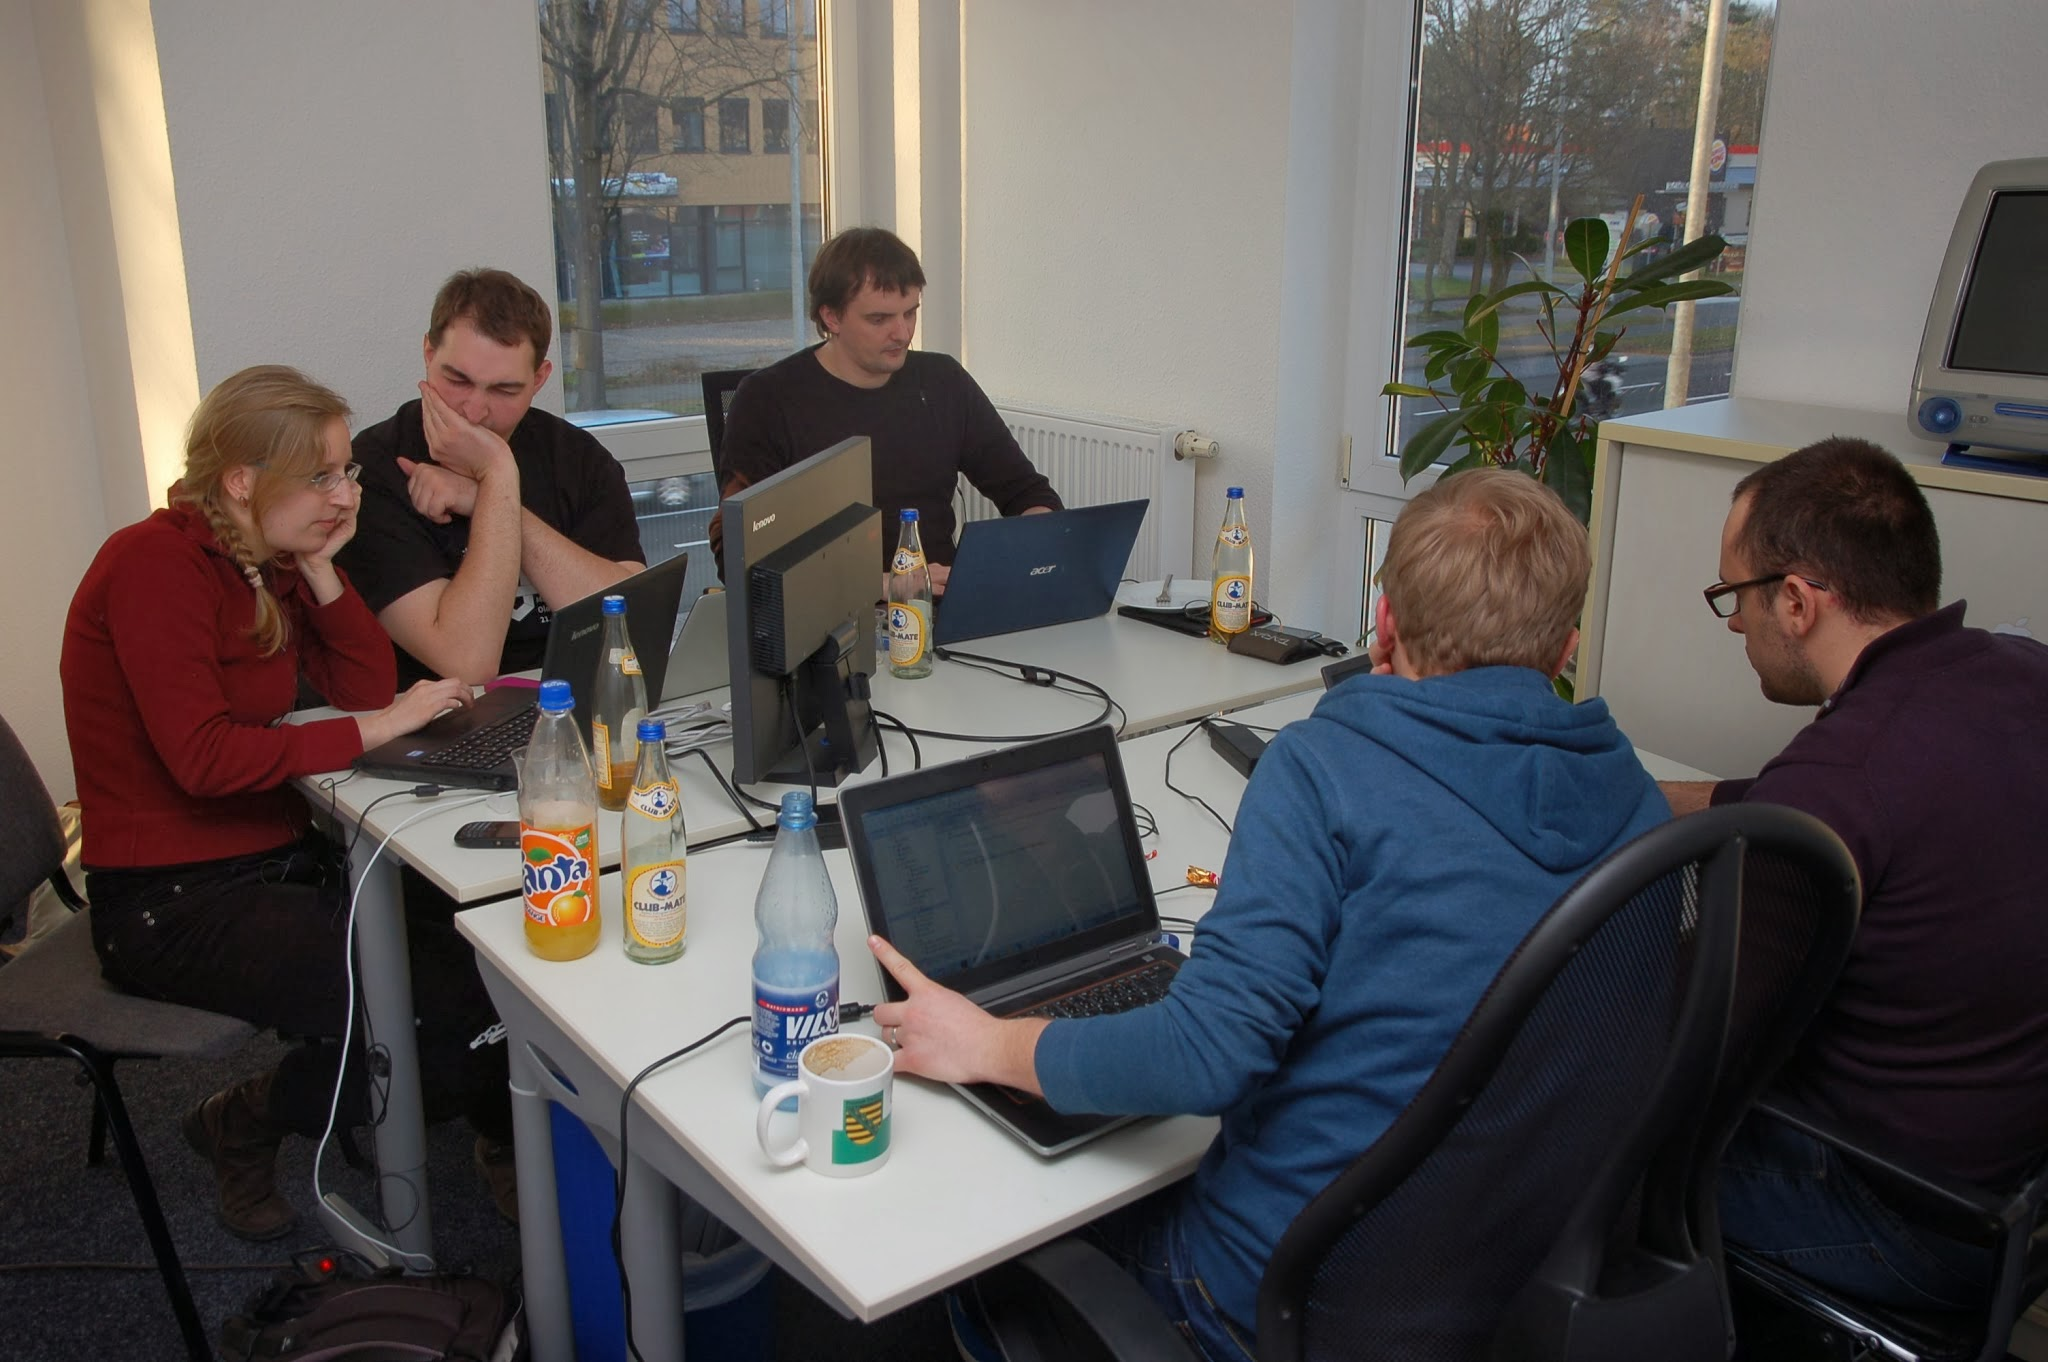 Oldenburg 2014 - group working on Hackathon_Gamification